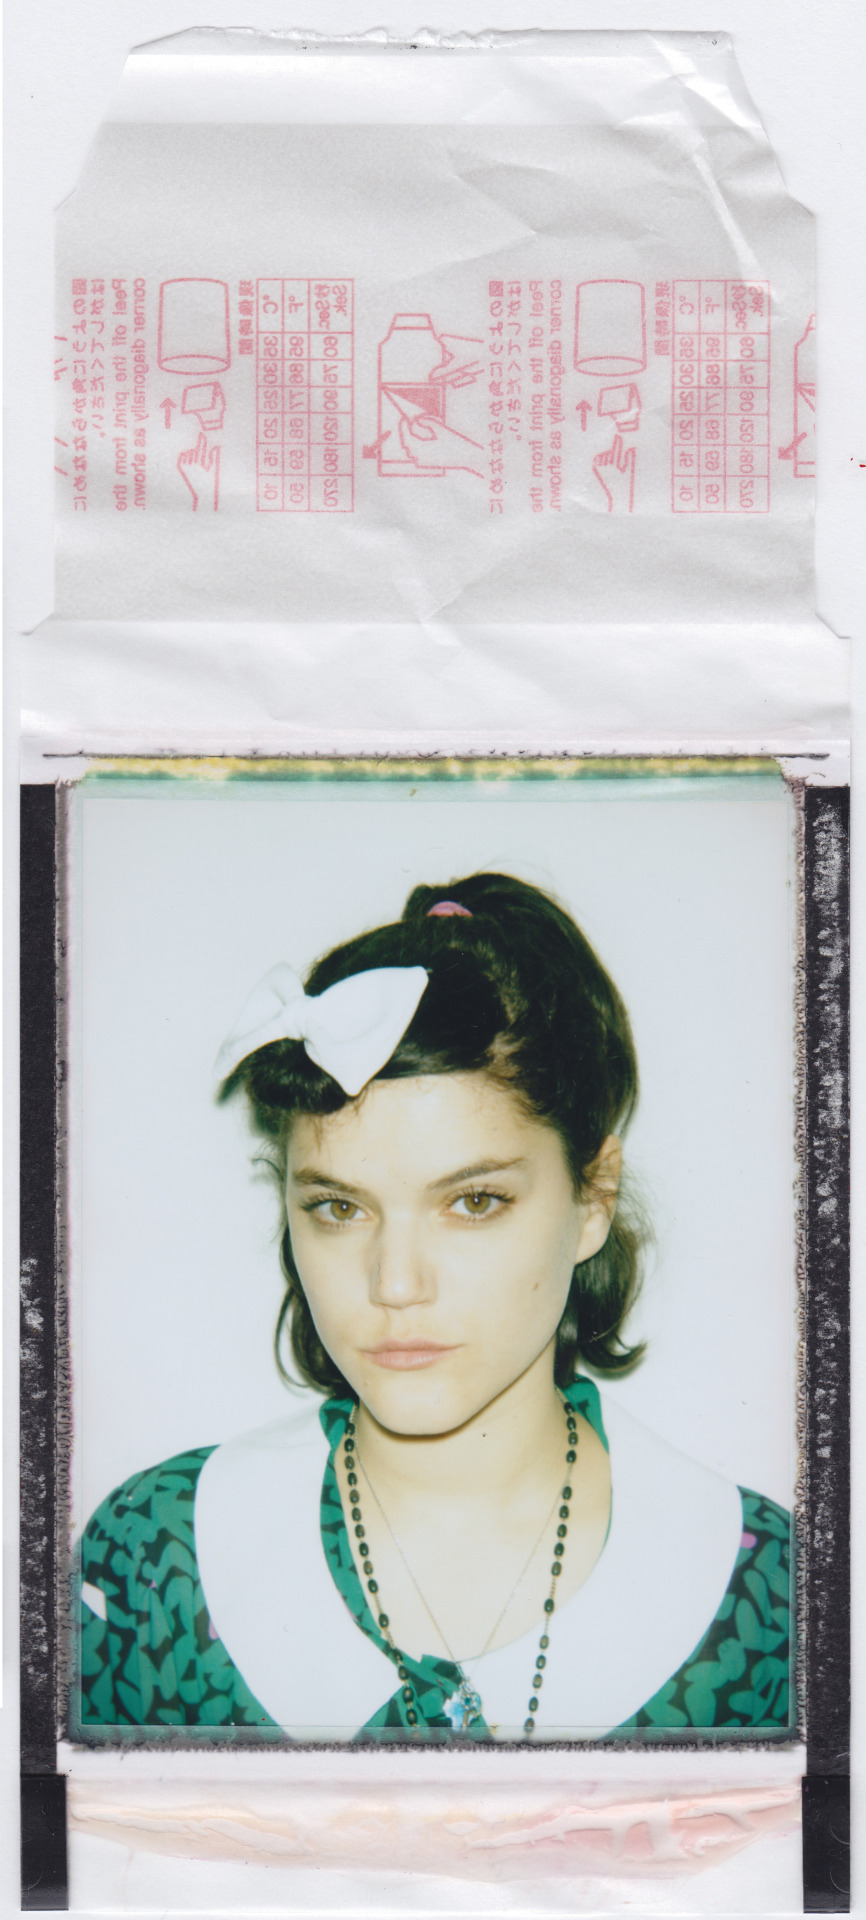 Soko shot by Curtis Kulig    http://purple.fr/diary/entry/soko-los-angeles-photo-curtis-kulig